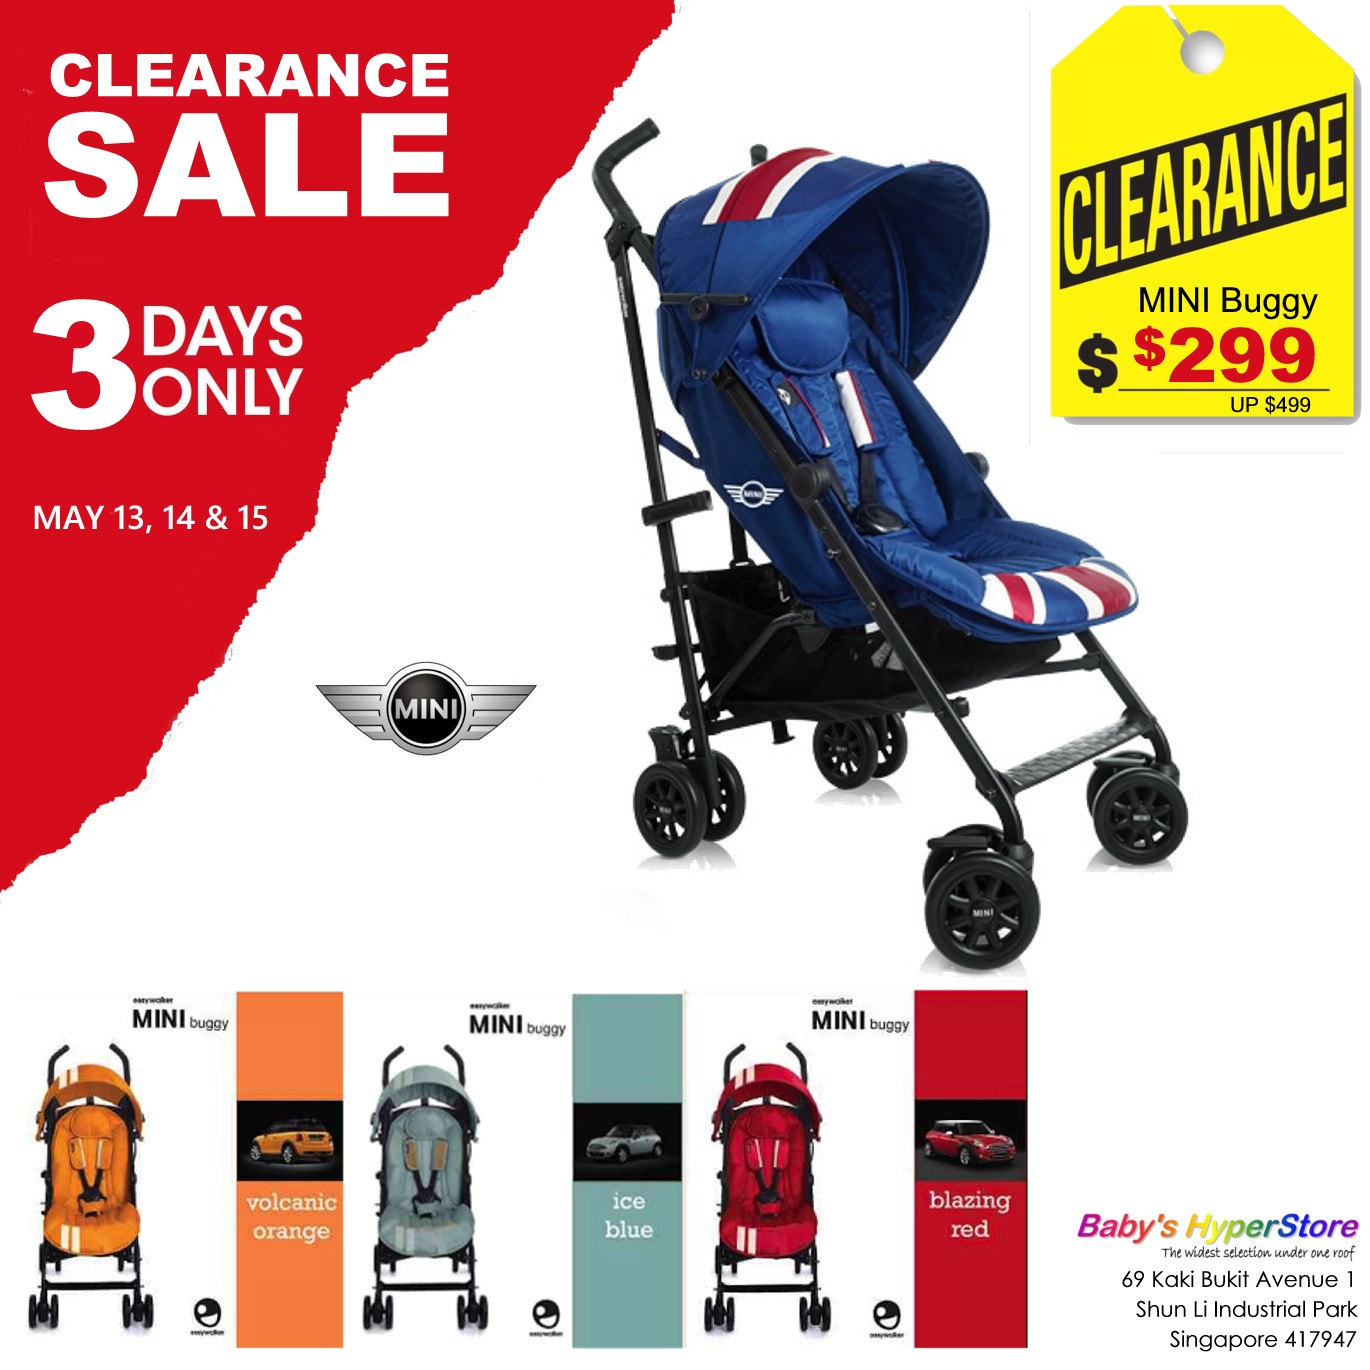 Skim through our new clearance items on the daily to snag deals as they come in. Kids seem to grow faster every day, so it makes perfect sense to score clearance prices on baby gear and stuff for the kiddos.